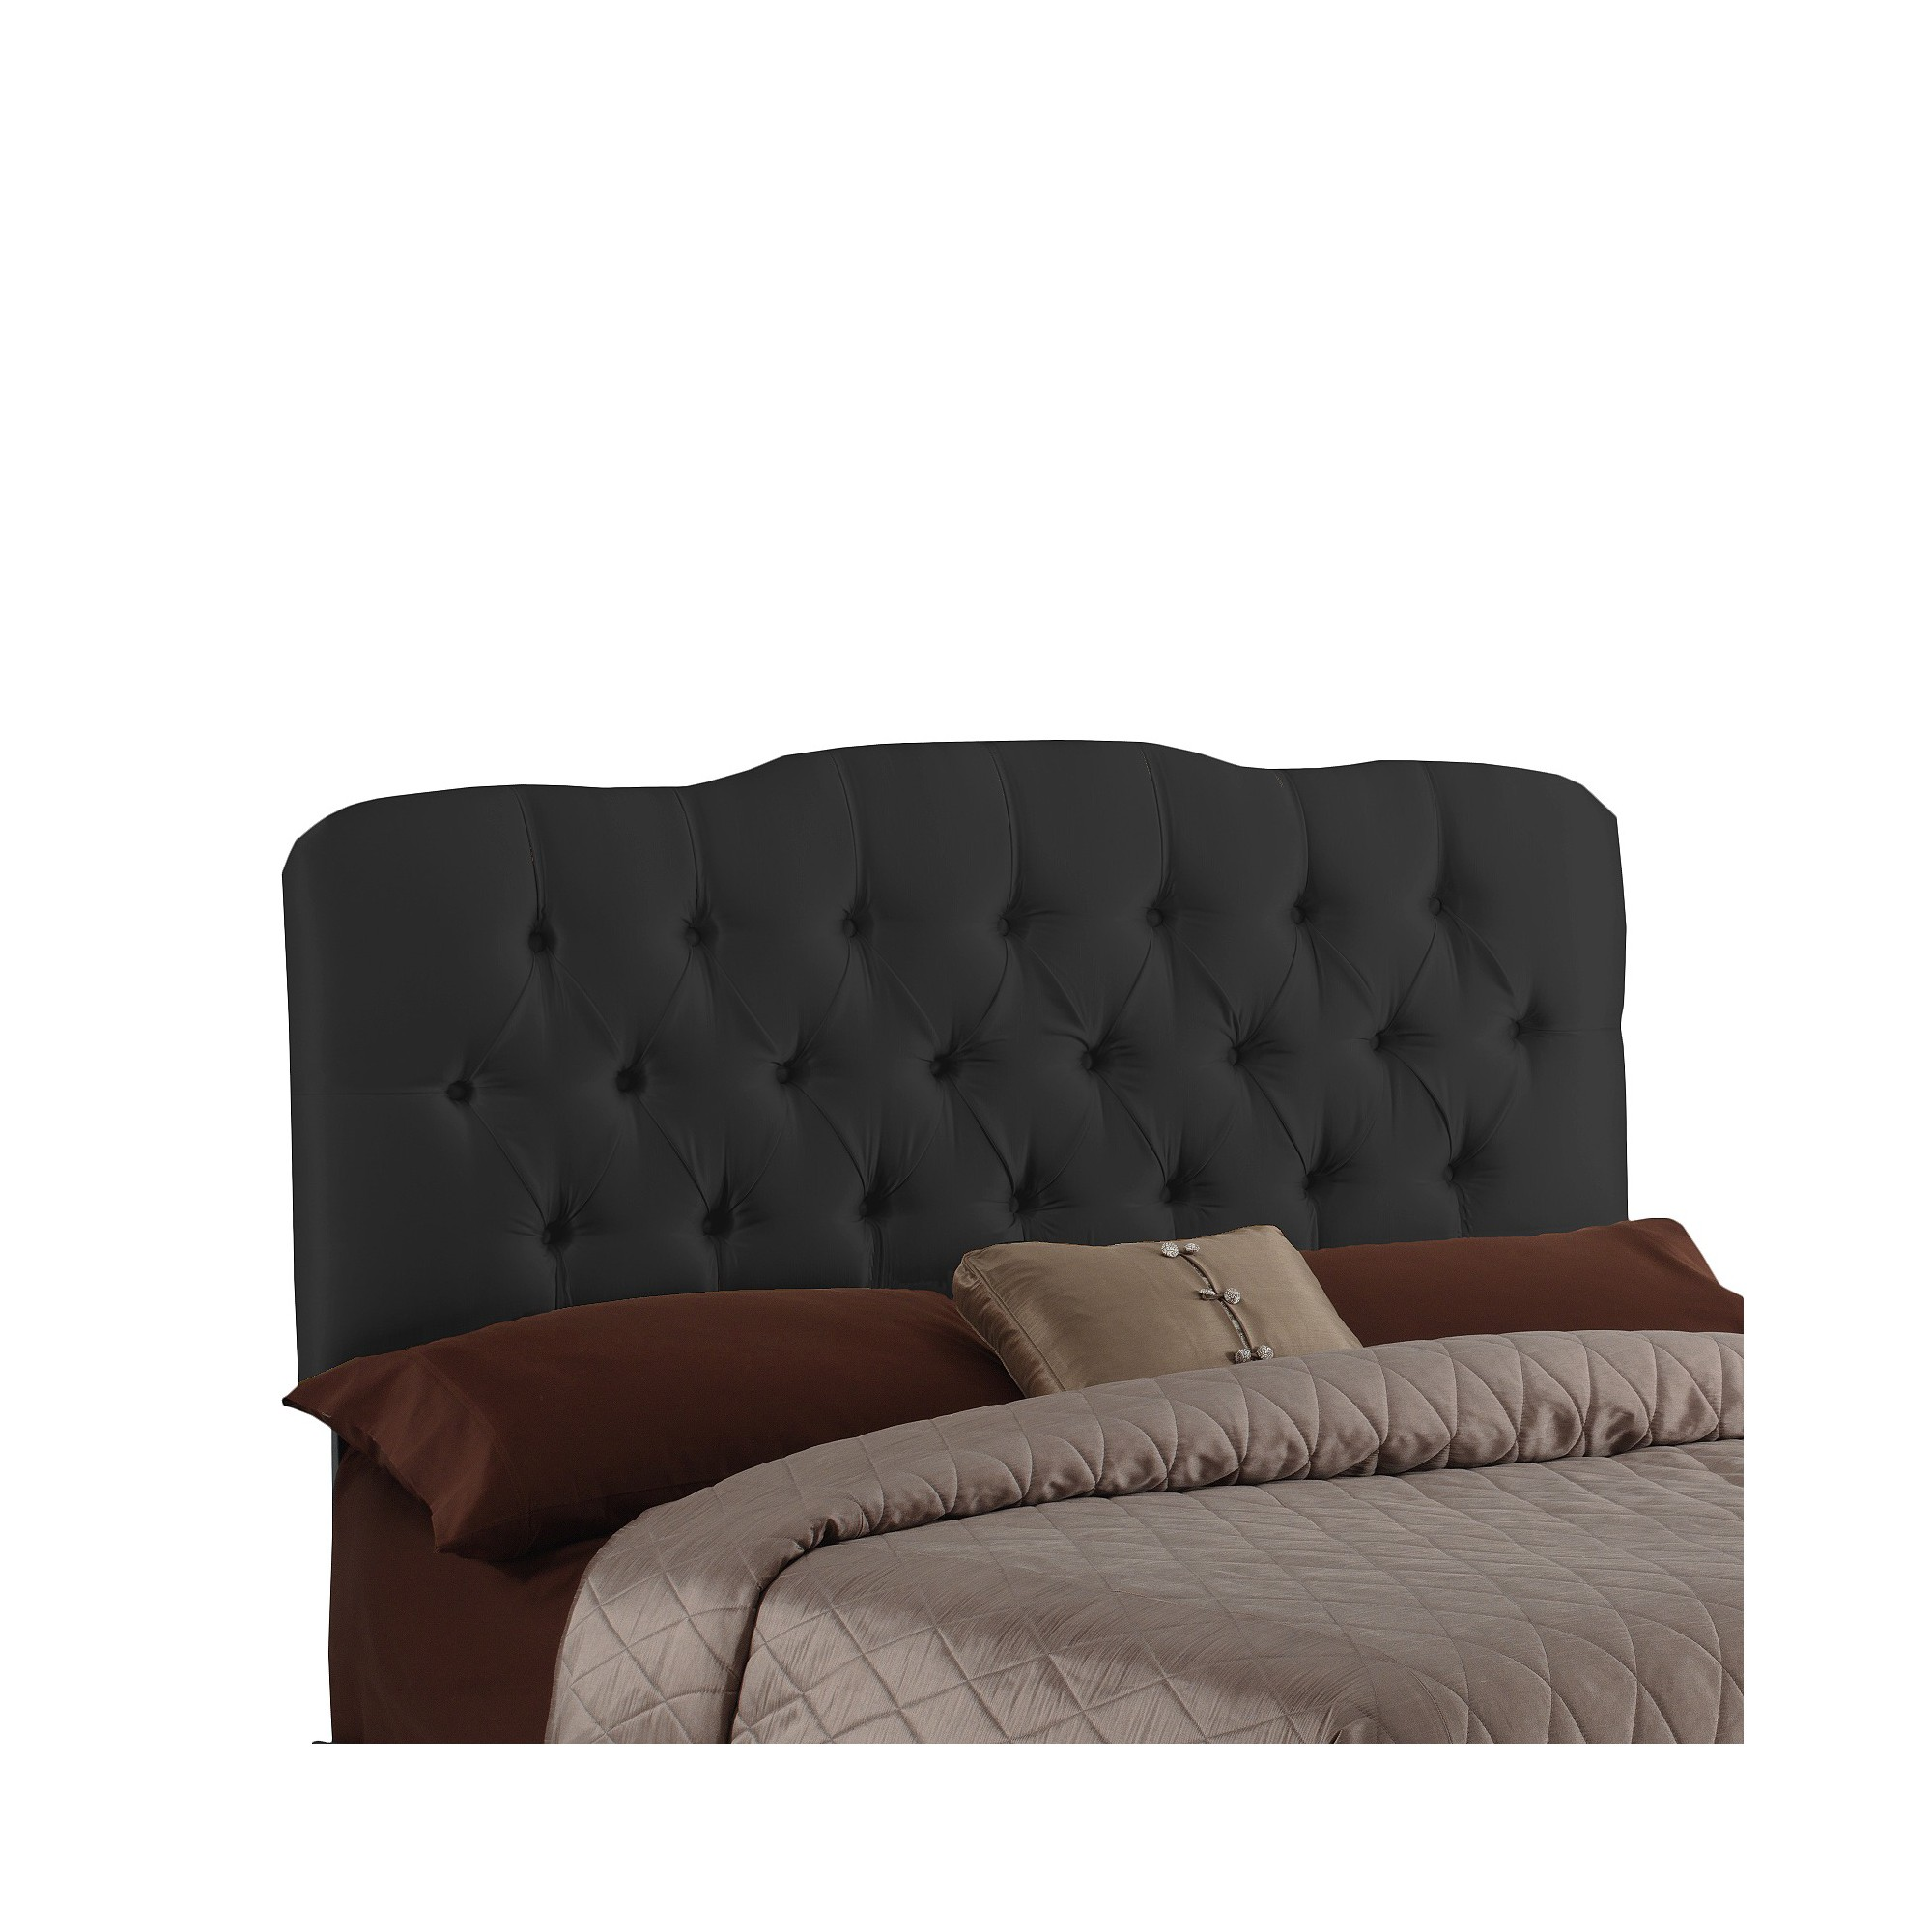 Seville Faux Silk Upholstered Headboard - Shantung Black - Full - Skyline Furniture